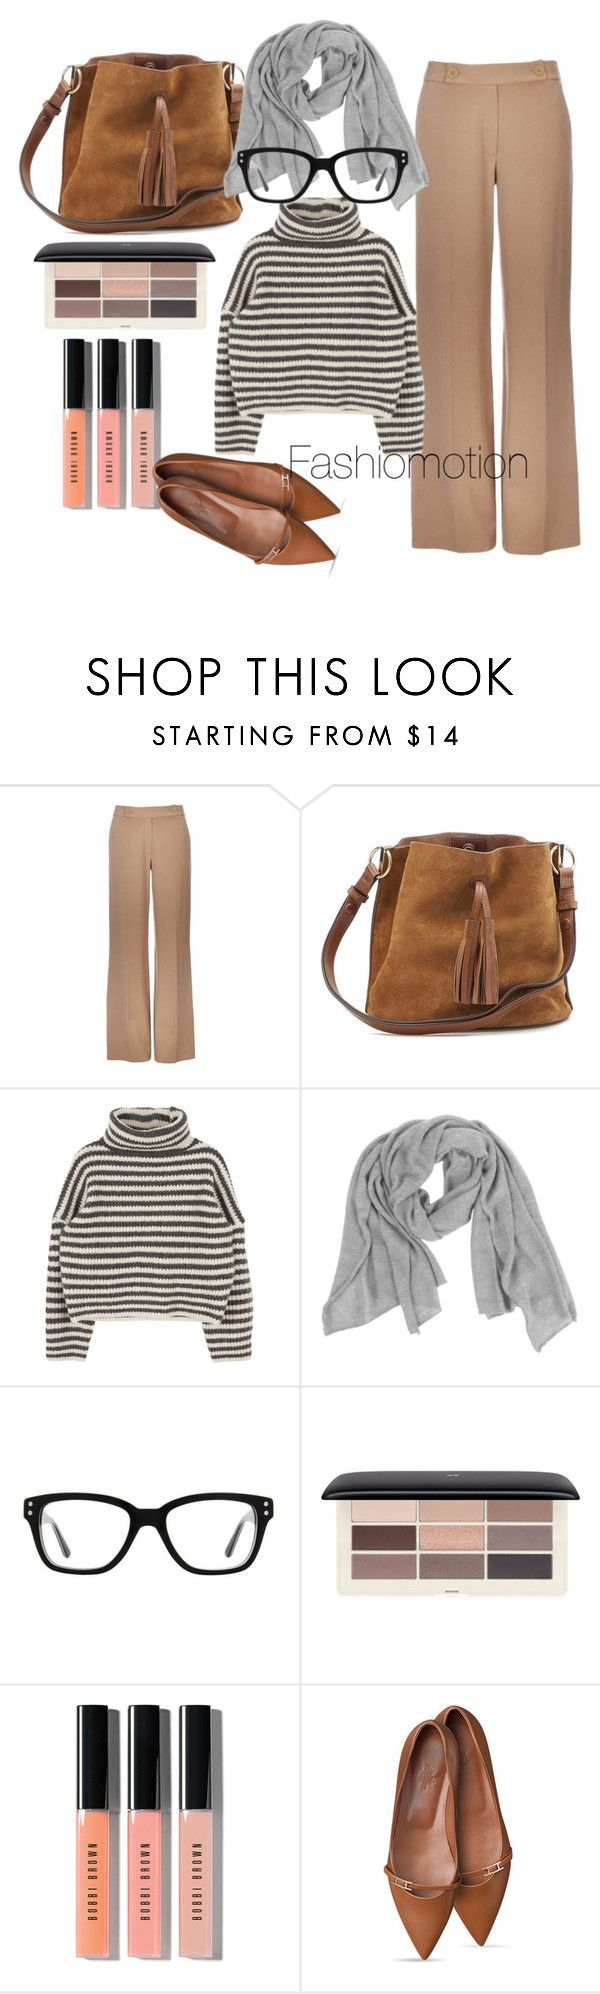 """For hijabers in campus"" by fashiomotion ❤ liked on Polyvore featuring Wallis, Samantha Holmes, Converse, H&M and Bobbi Brown Cosmetics"